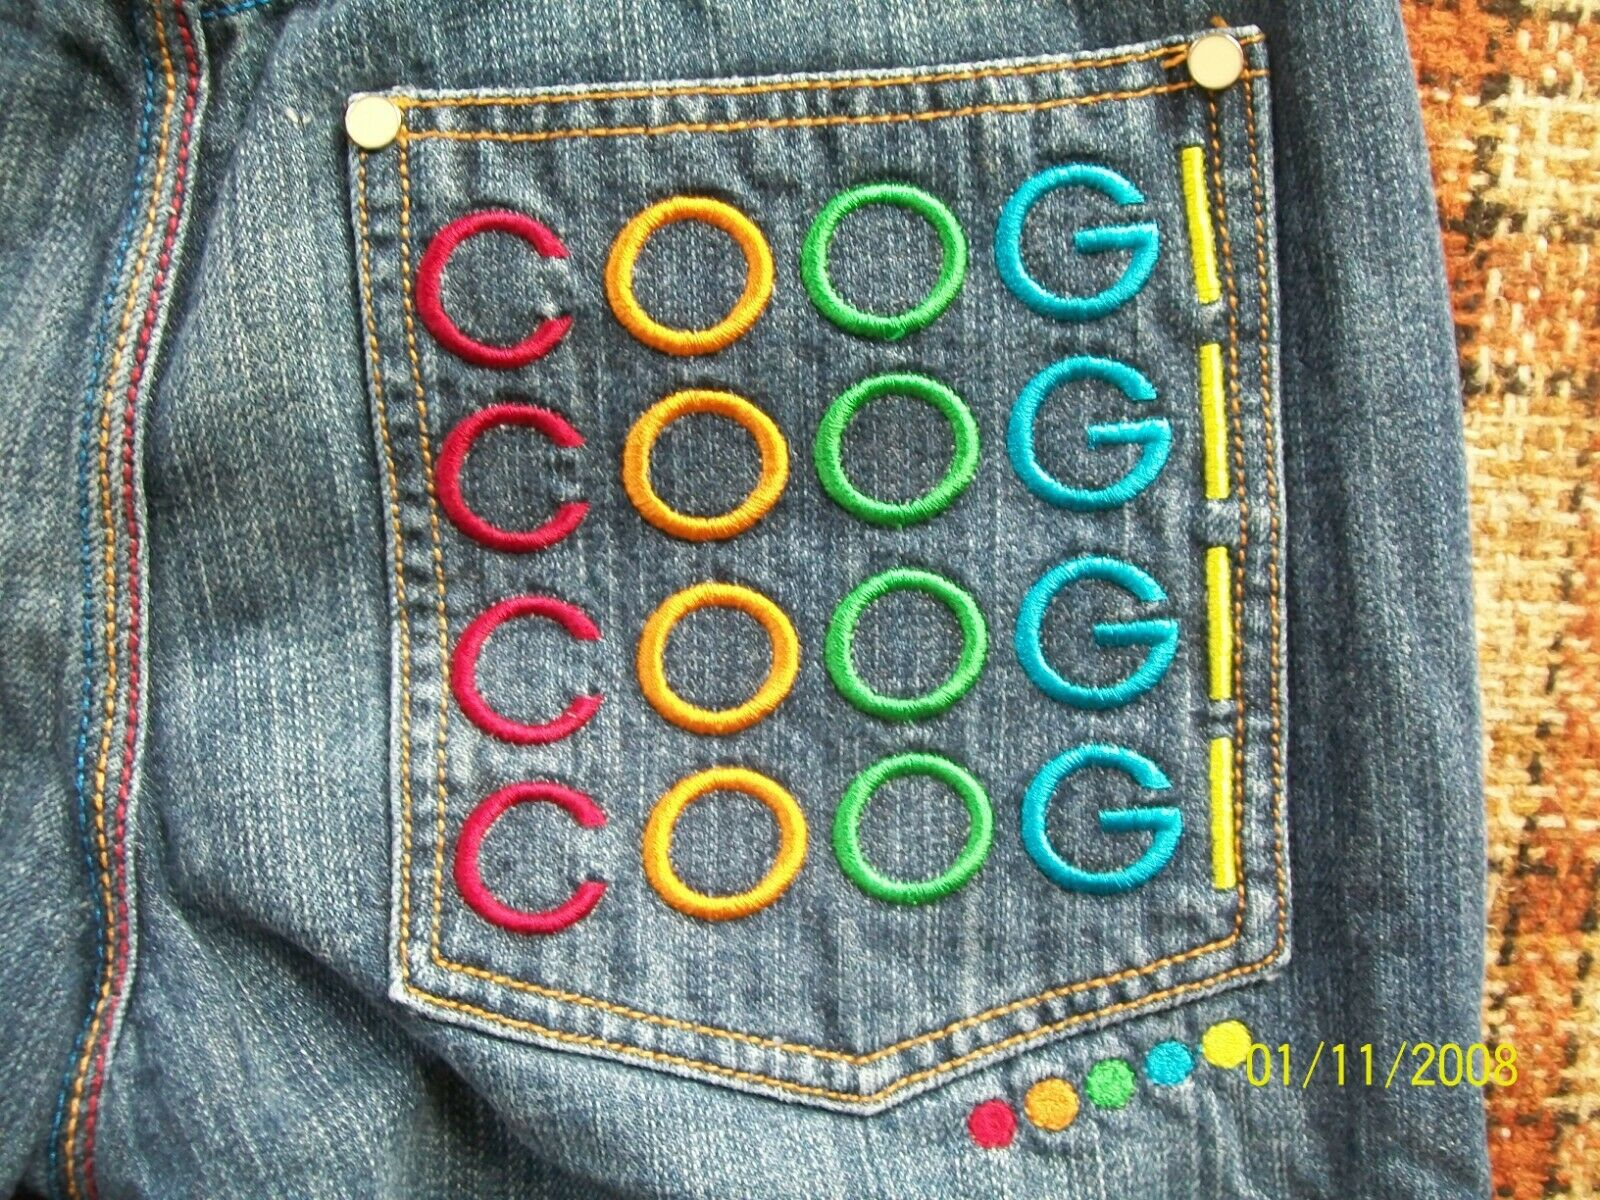 Coogi Womens 16 (Actual 26x29) Loose Fit 100% Cotton Jeans